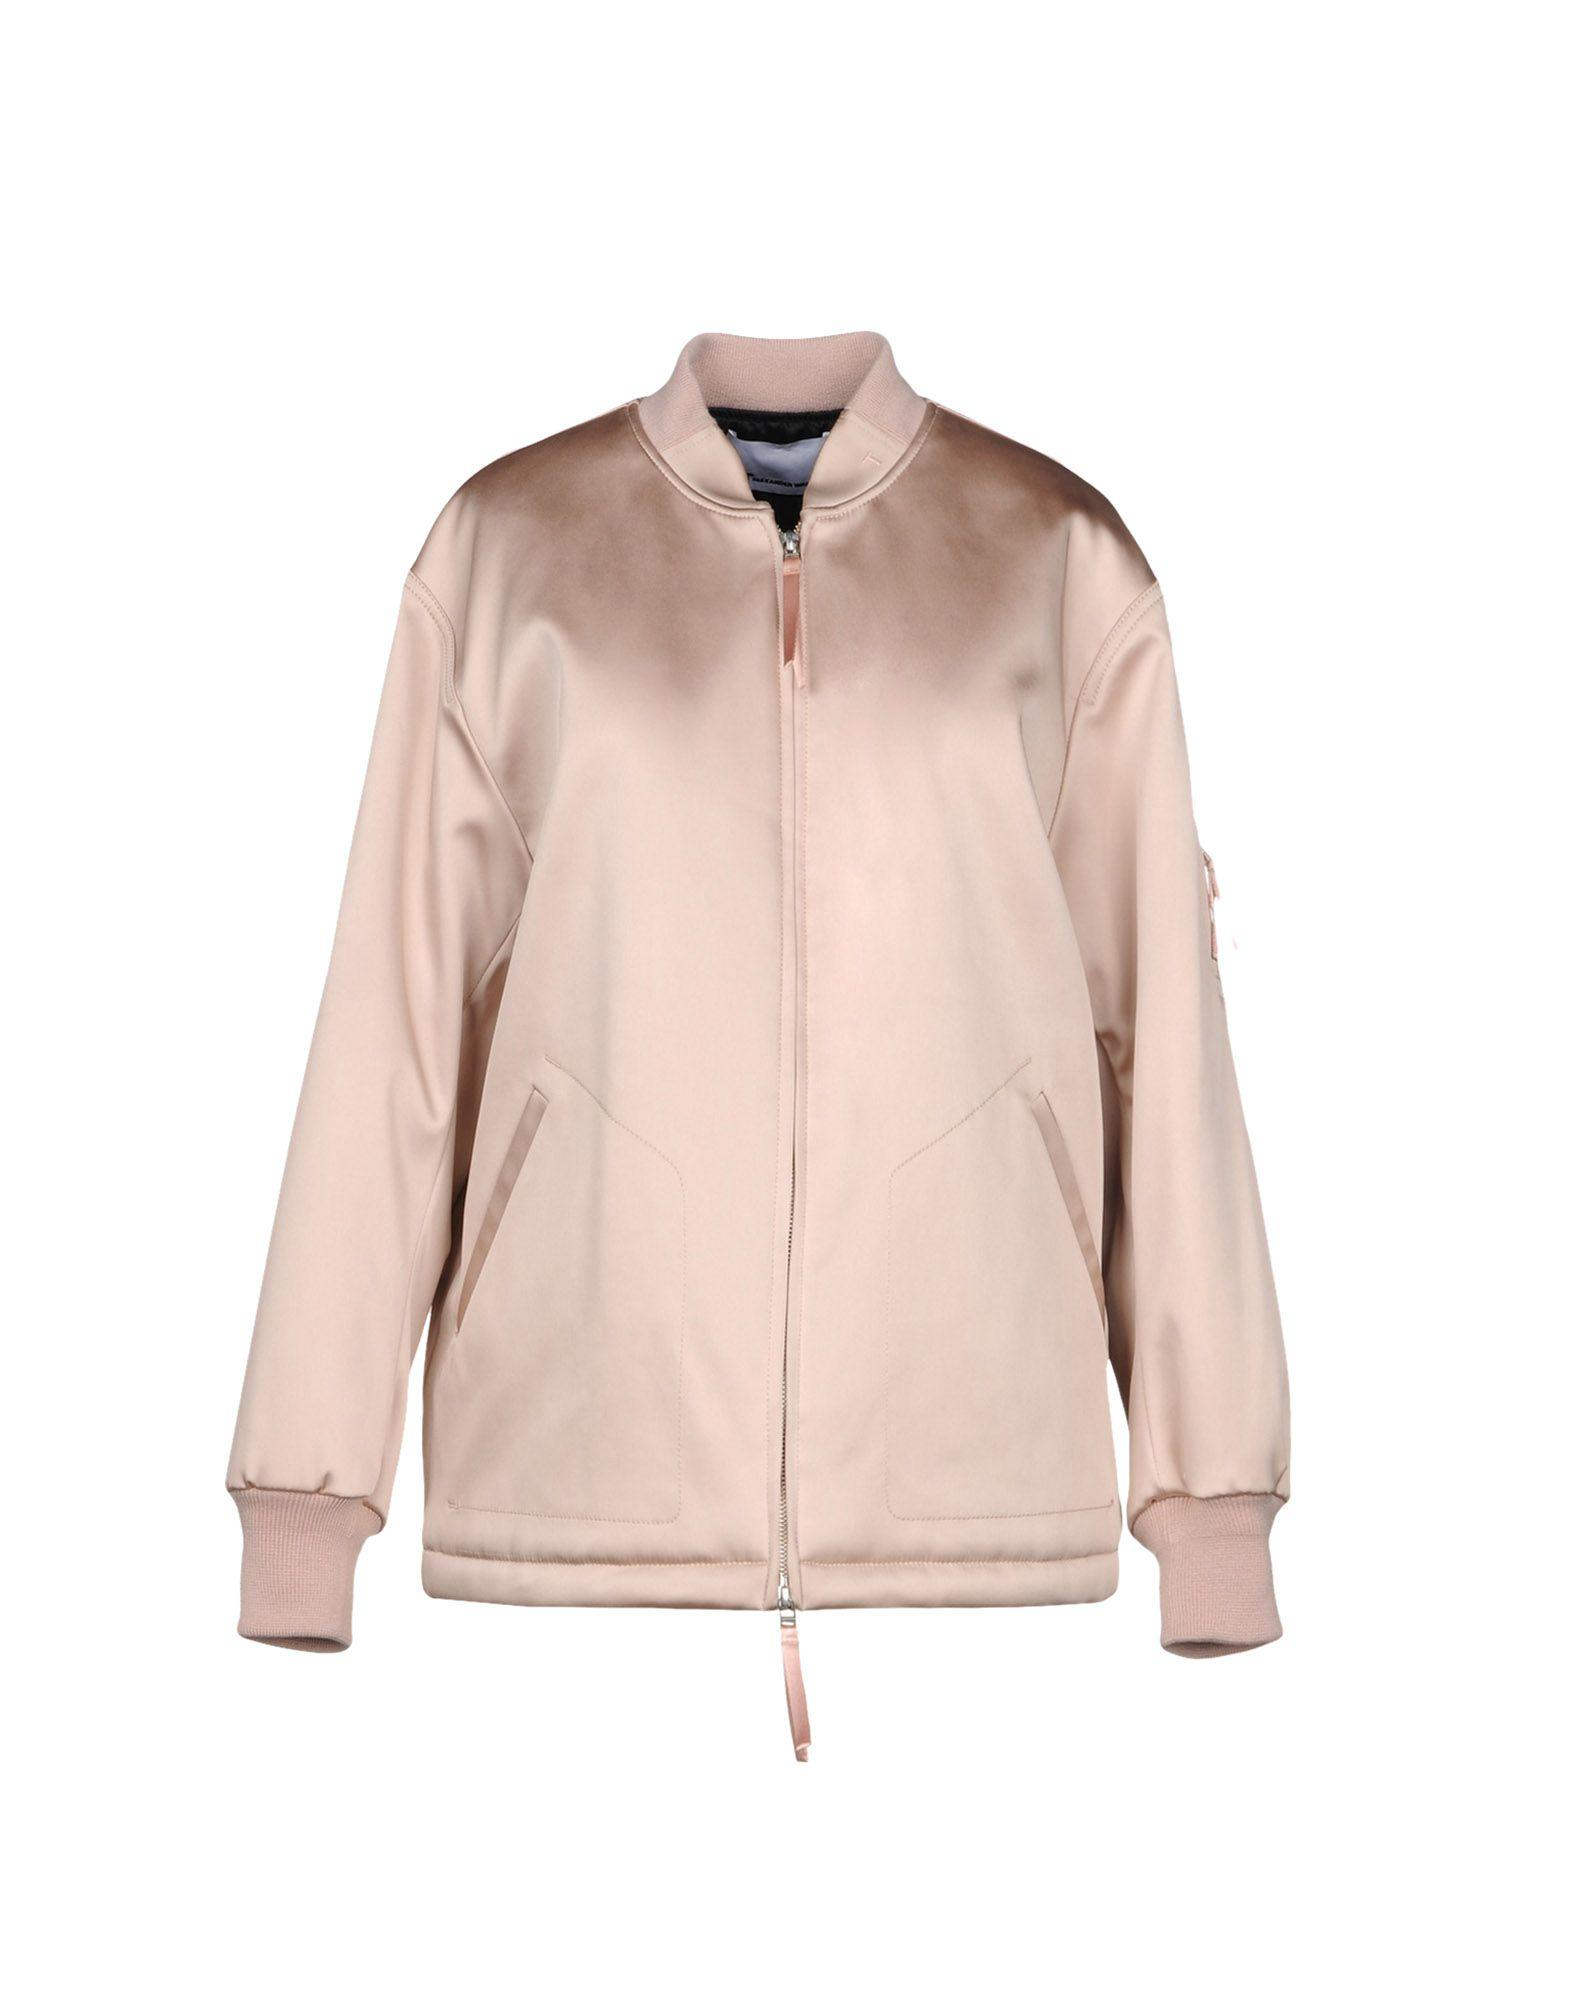 dc522e25c Jacket in Light Pink